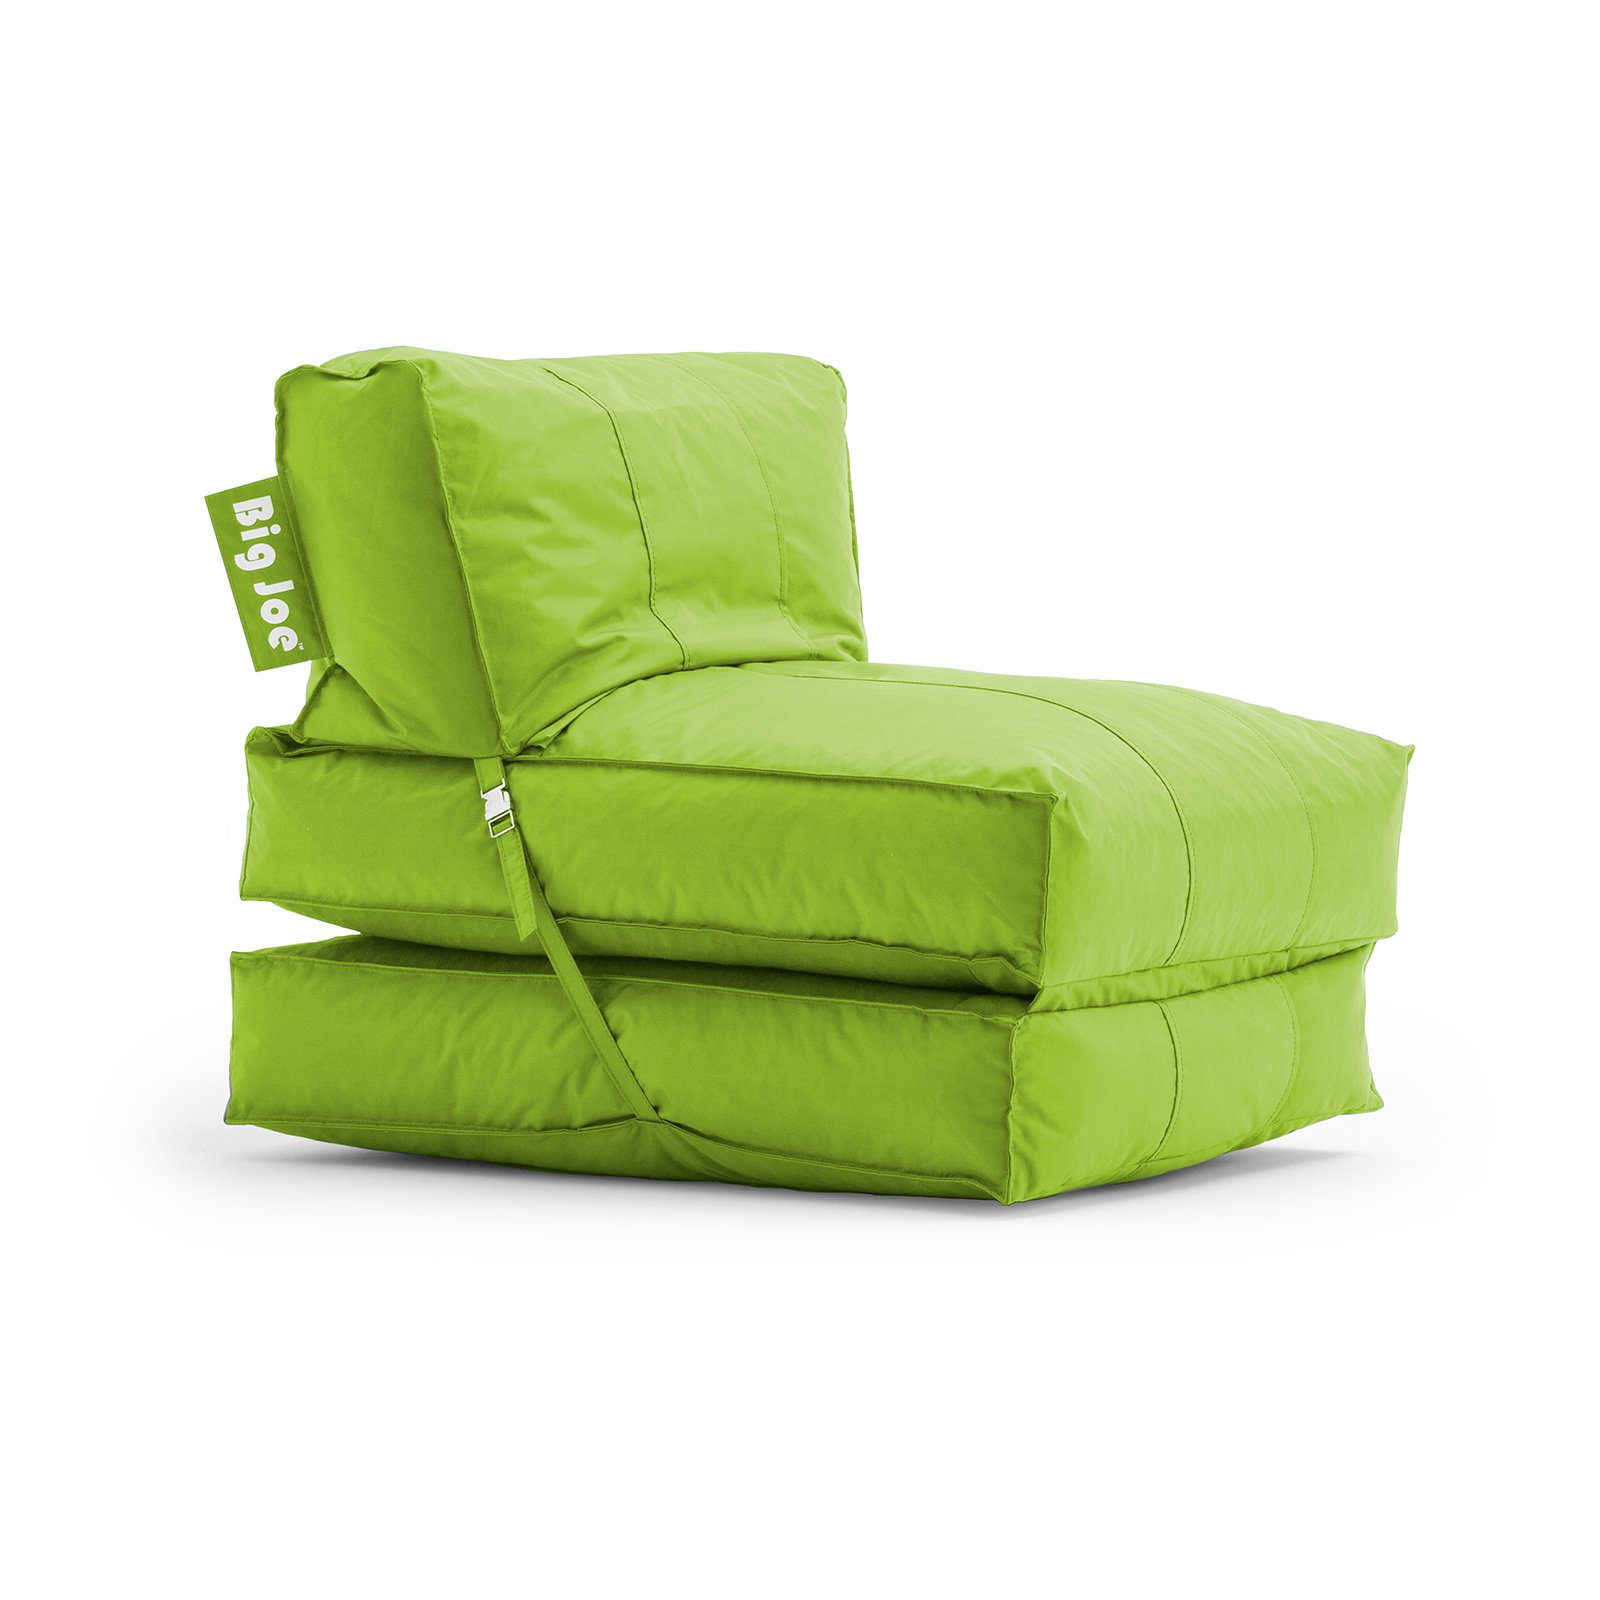 Genial Big Joe Flip Lounger Bean Bag Chair   Walmart.com